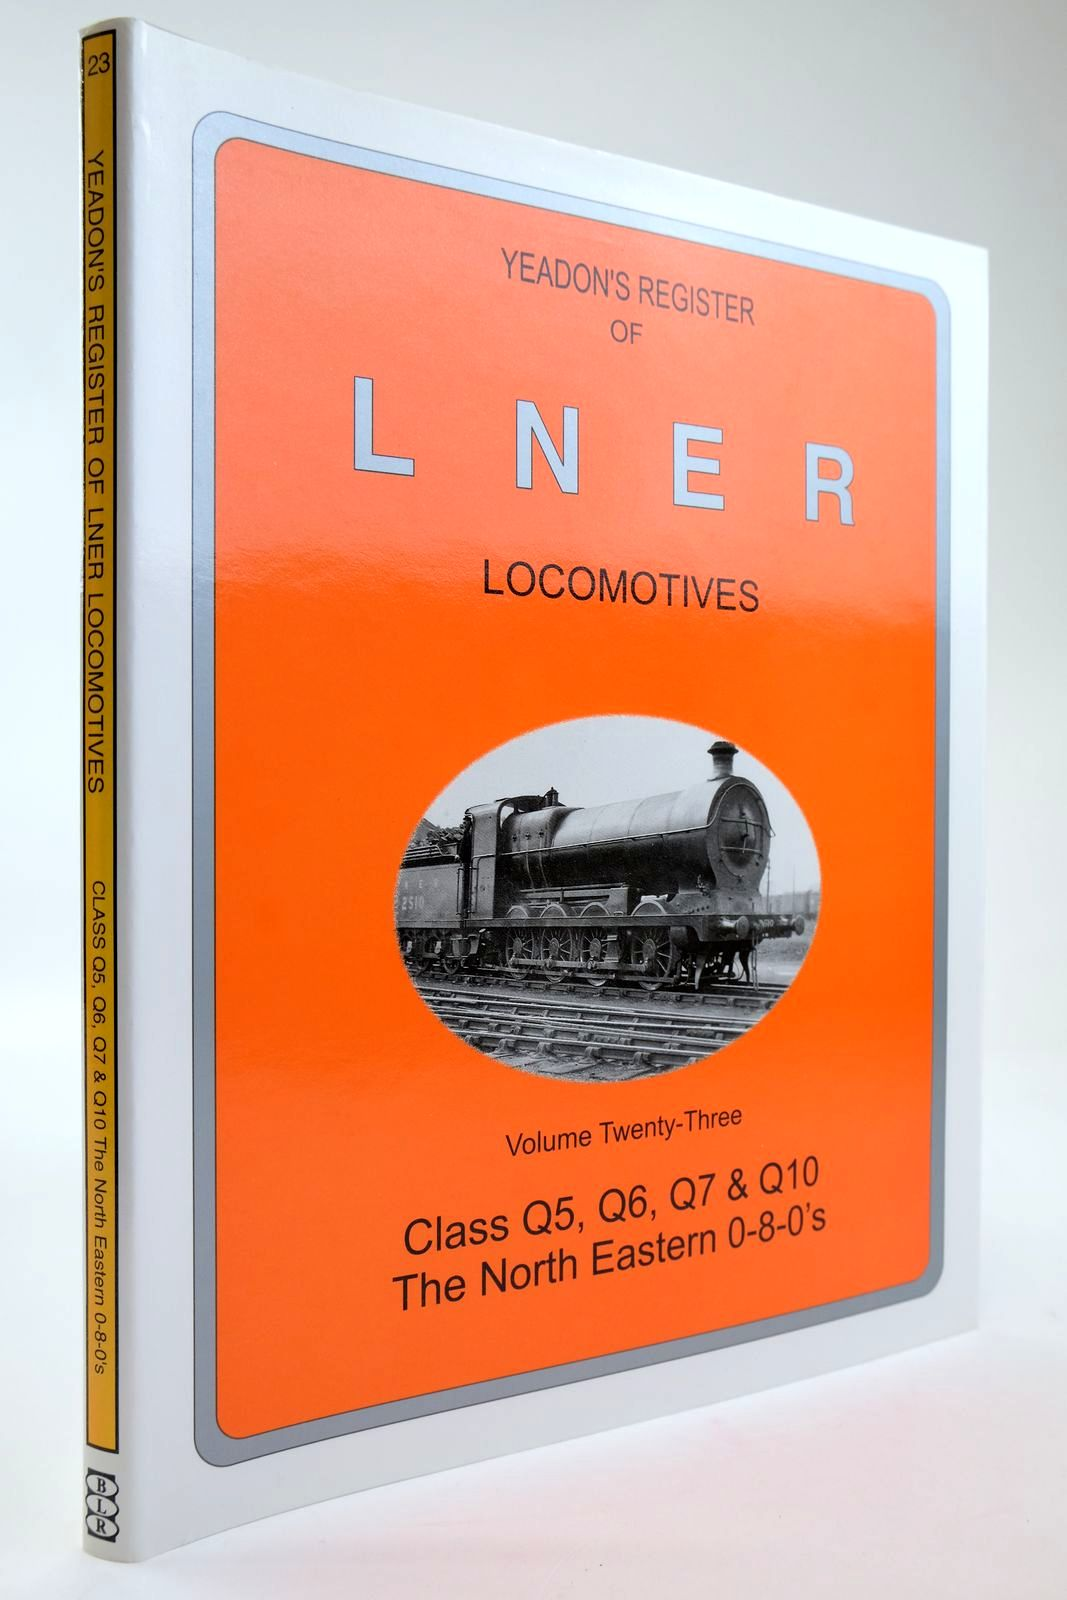 Photo of YEADON'S REGISTER OF LNER LOCOMOTIVES VOLUME TWENTY-THREE written by Yeadon, W.B. published by Booklaw Railbus, Challenger Publications (STOCK CODE: 2133572)  for sale by Stella & Rose's Books